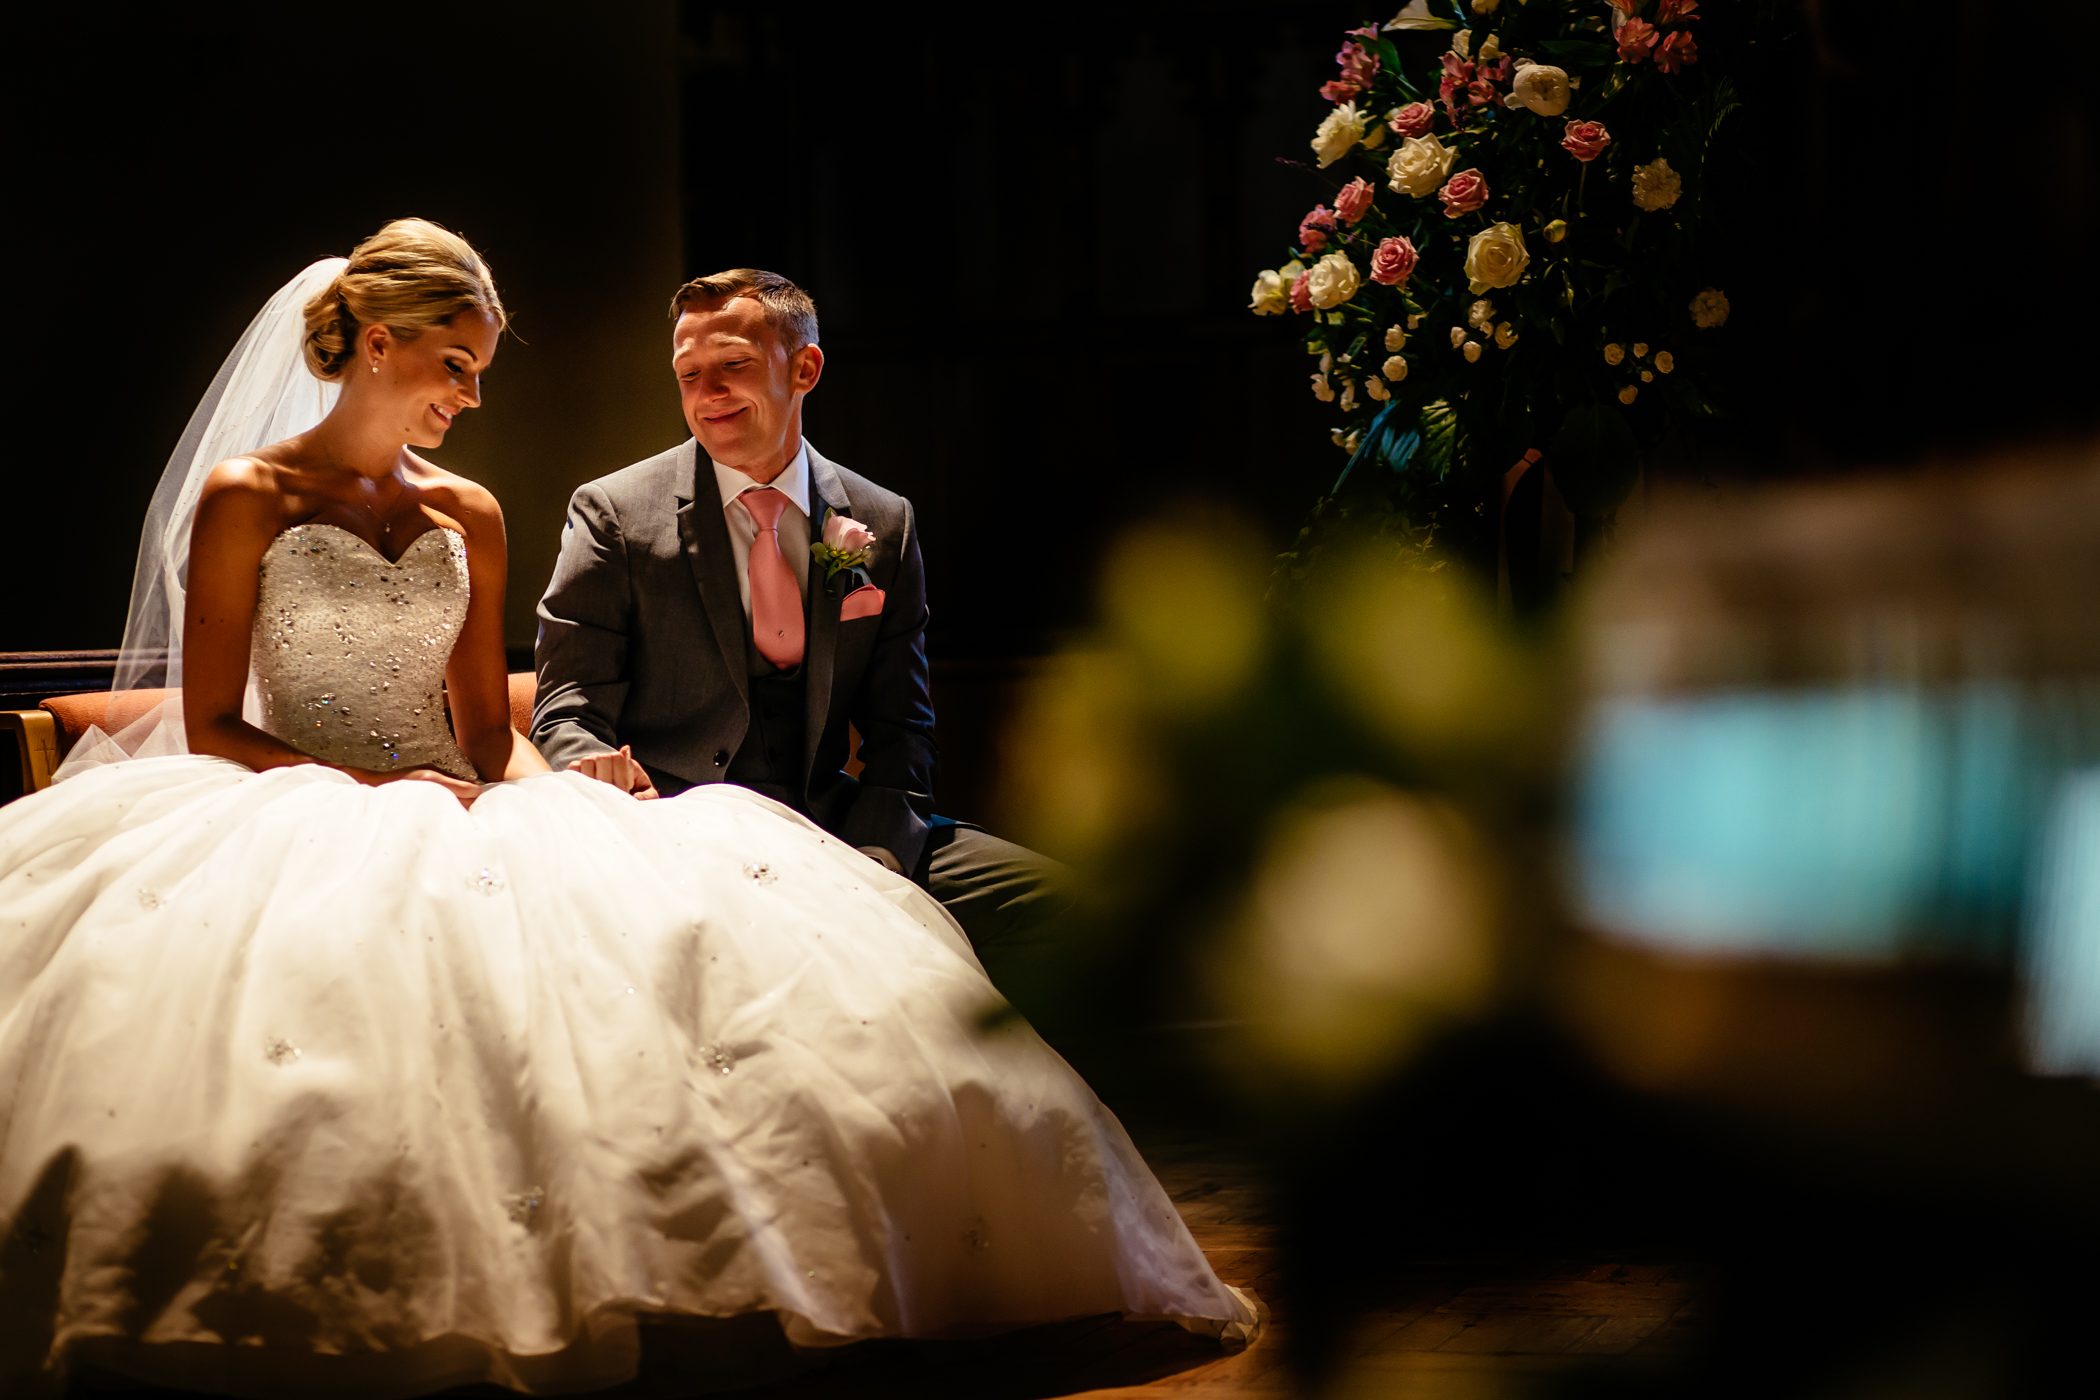 Lisa & Neil - Sansom Photography Harewood House Yorkshire Wedding Photography-23